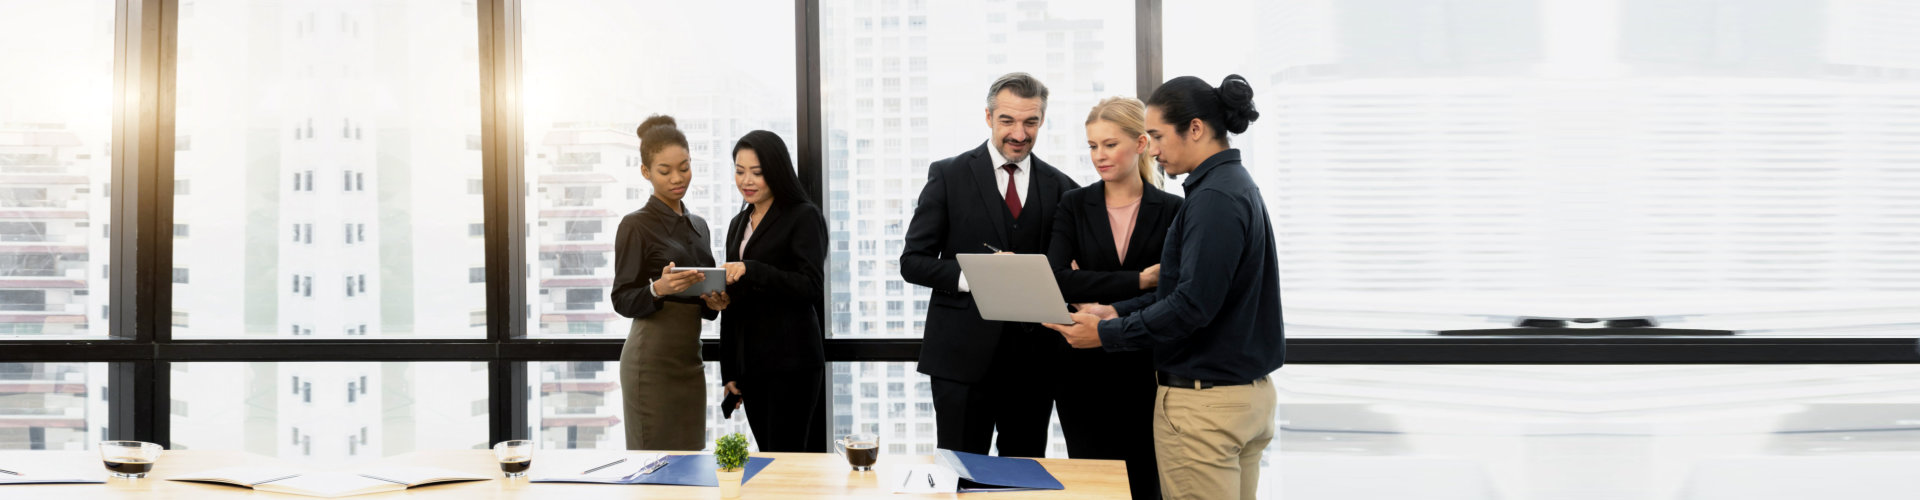 employees looking at data on a tablet and laptop computer